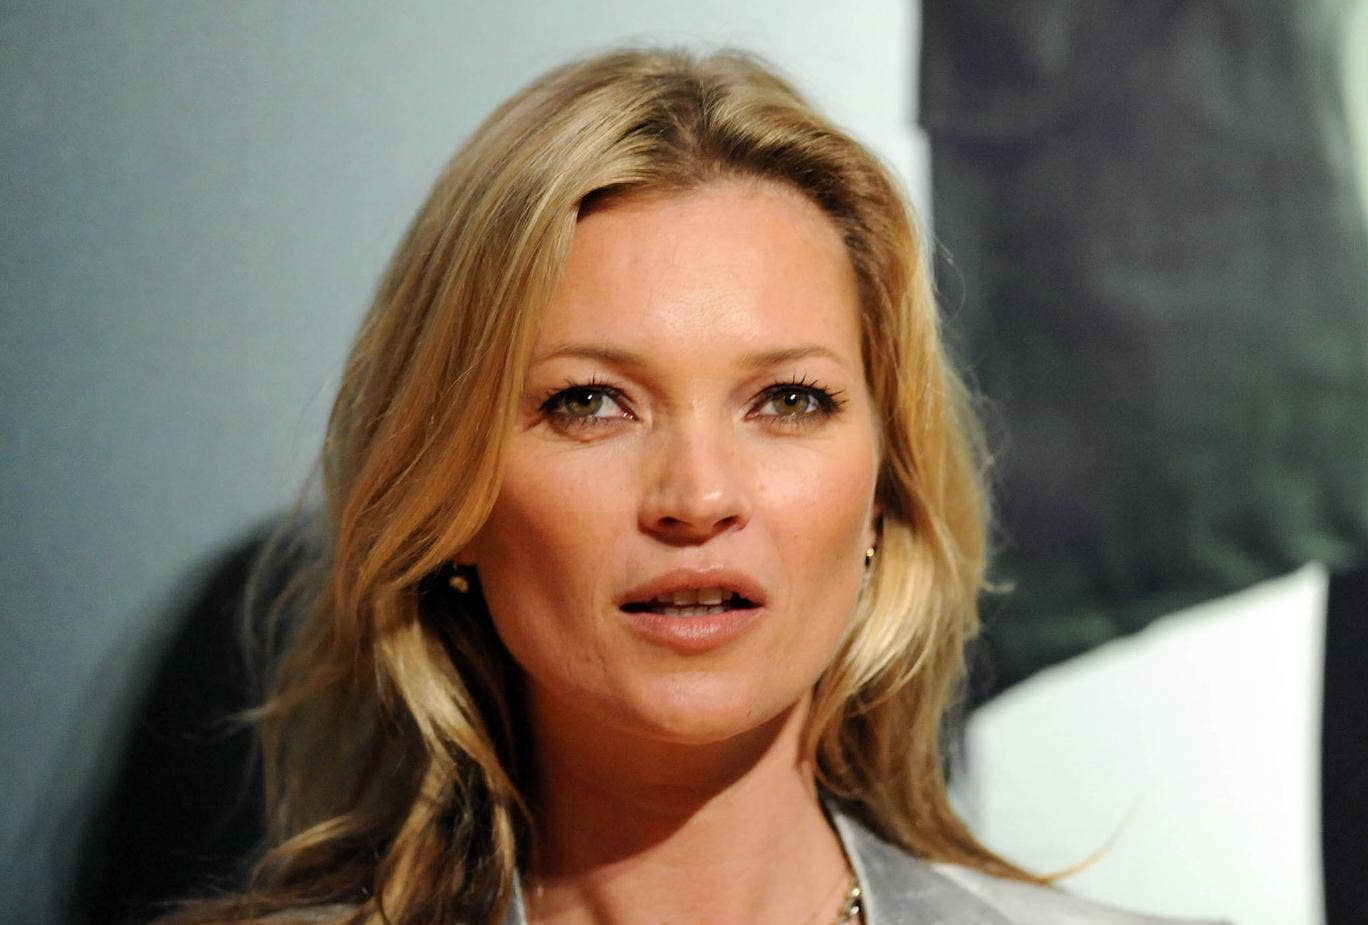 Kate Moss has appeared on a track by Canadian DJ Brendan Fallis